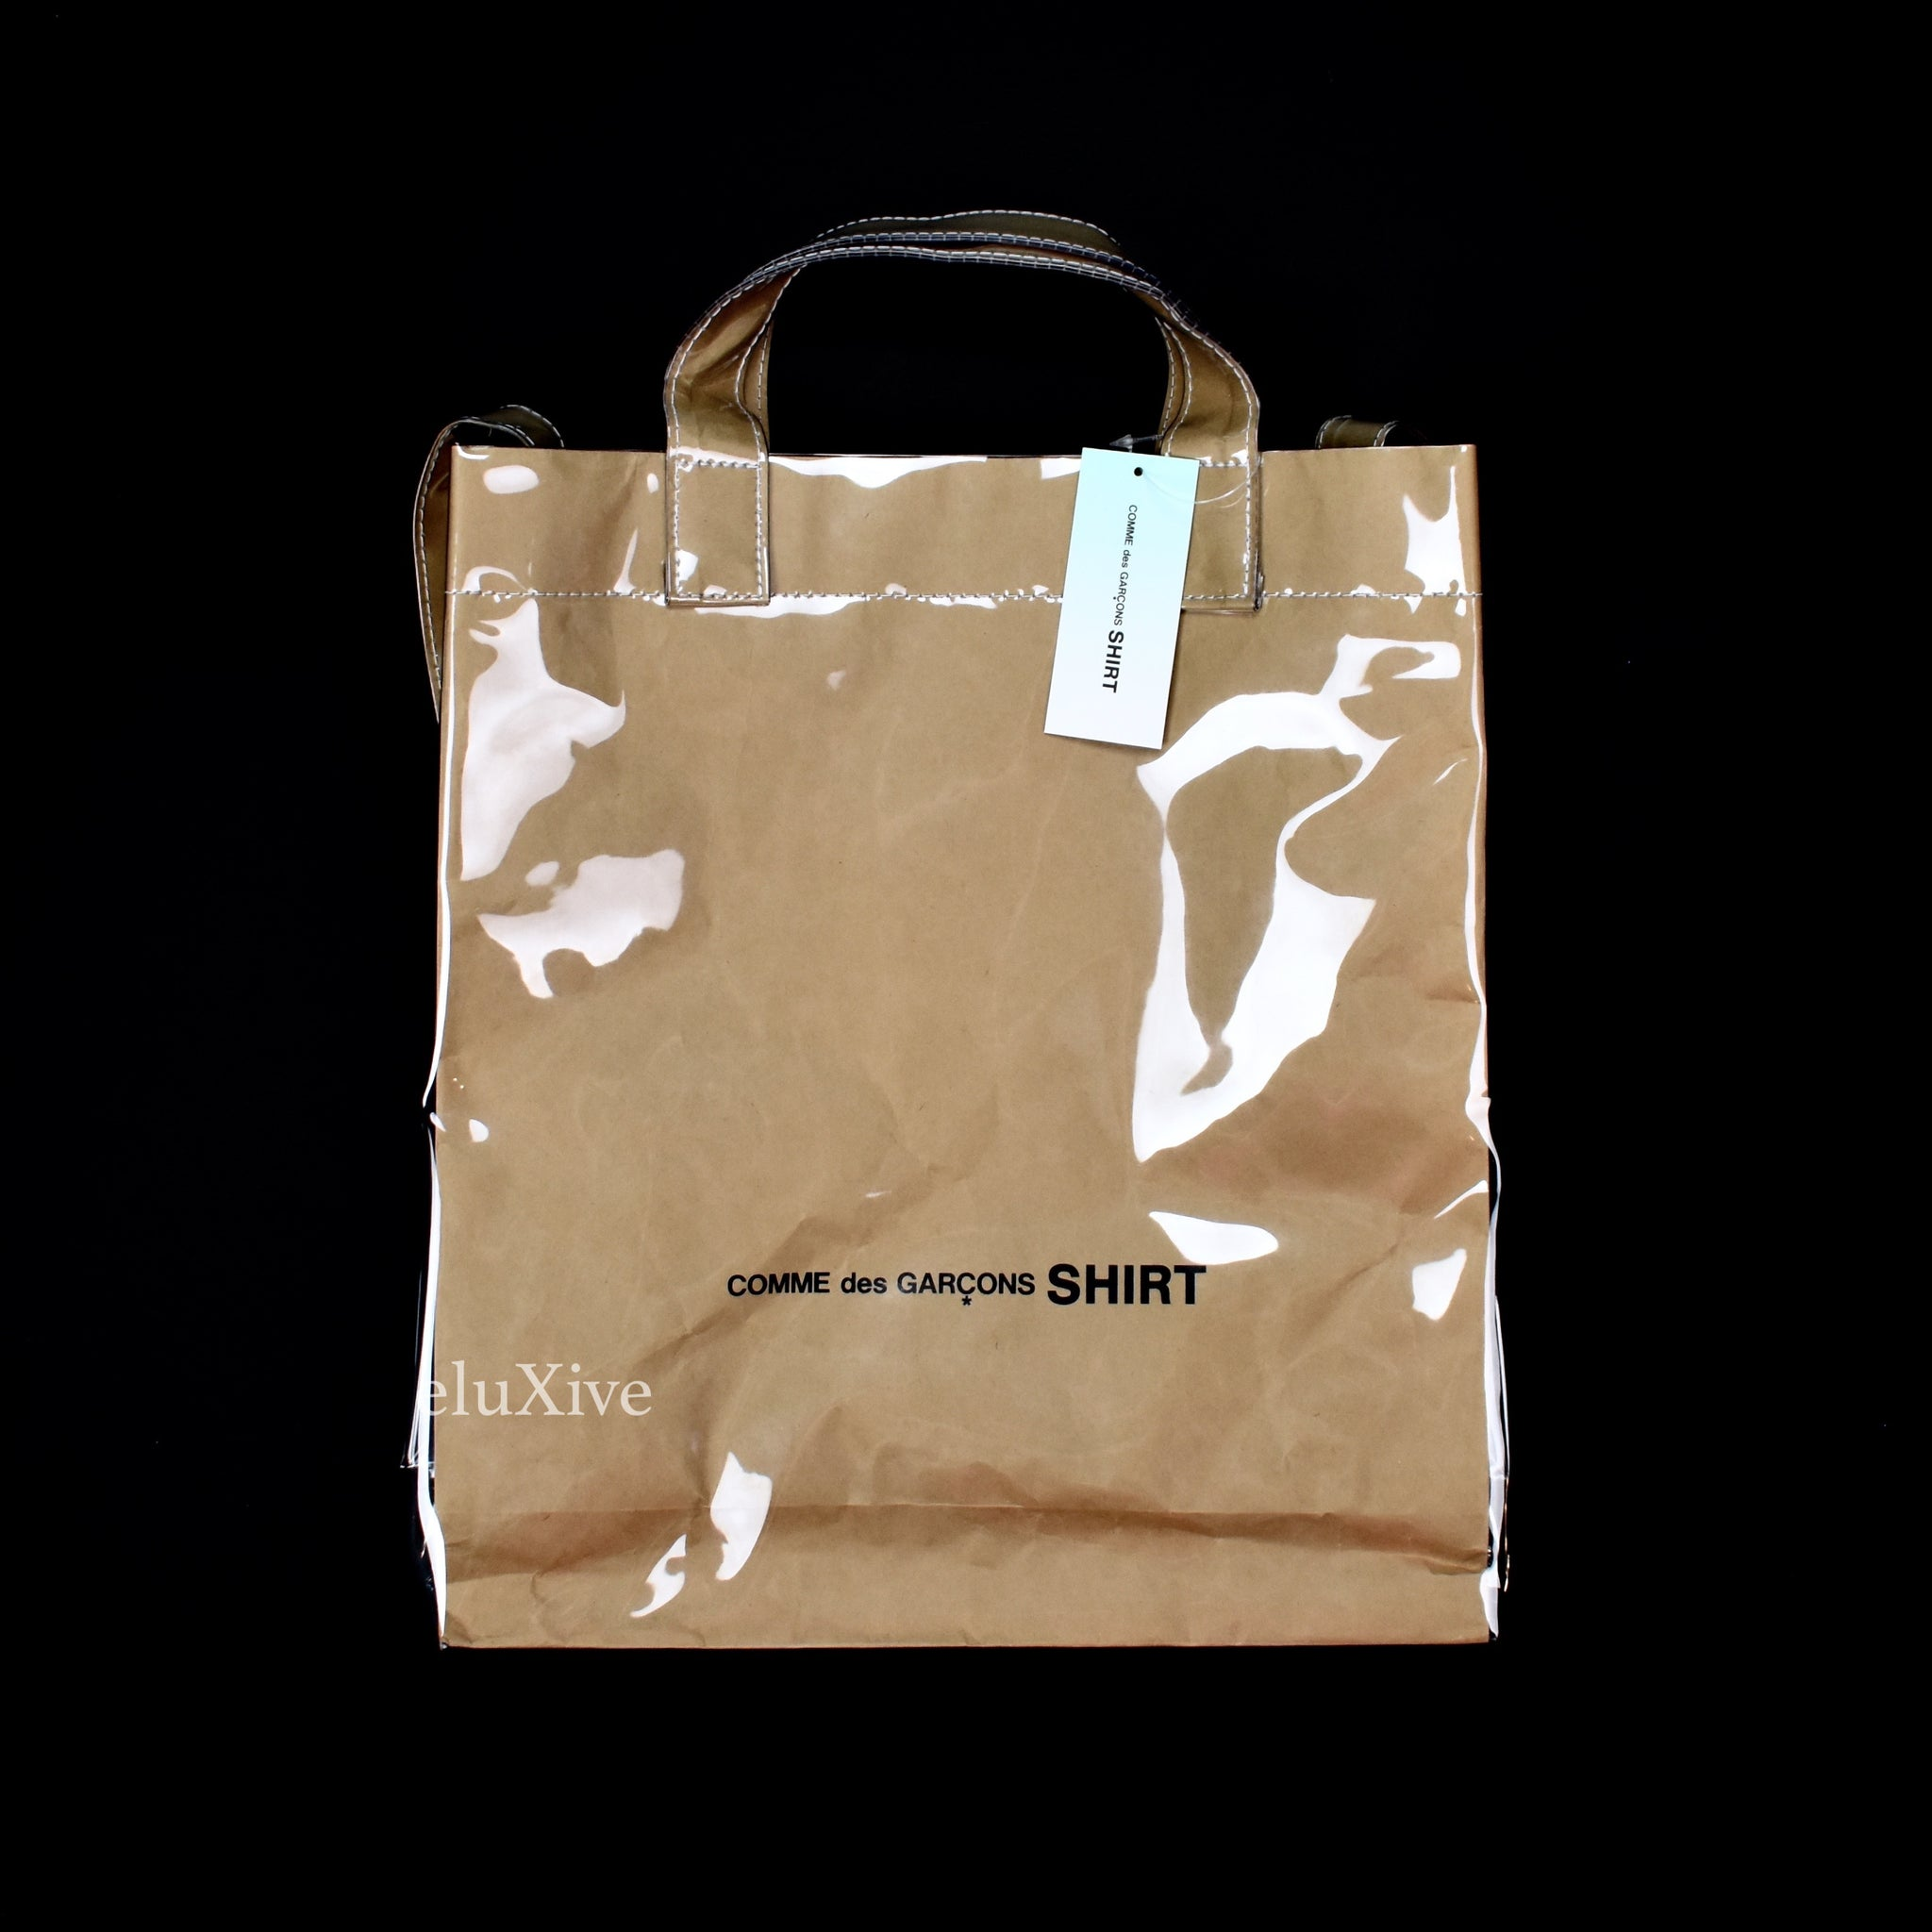 tote bags vs plastic bags essay Bulletin bag offers a wide selection of reusable bag materials  single use paper or plastic bags  insulated tote bags folding bags lunch bags gift bags.